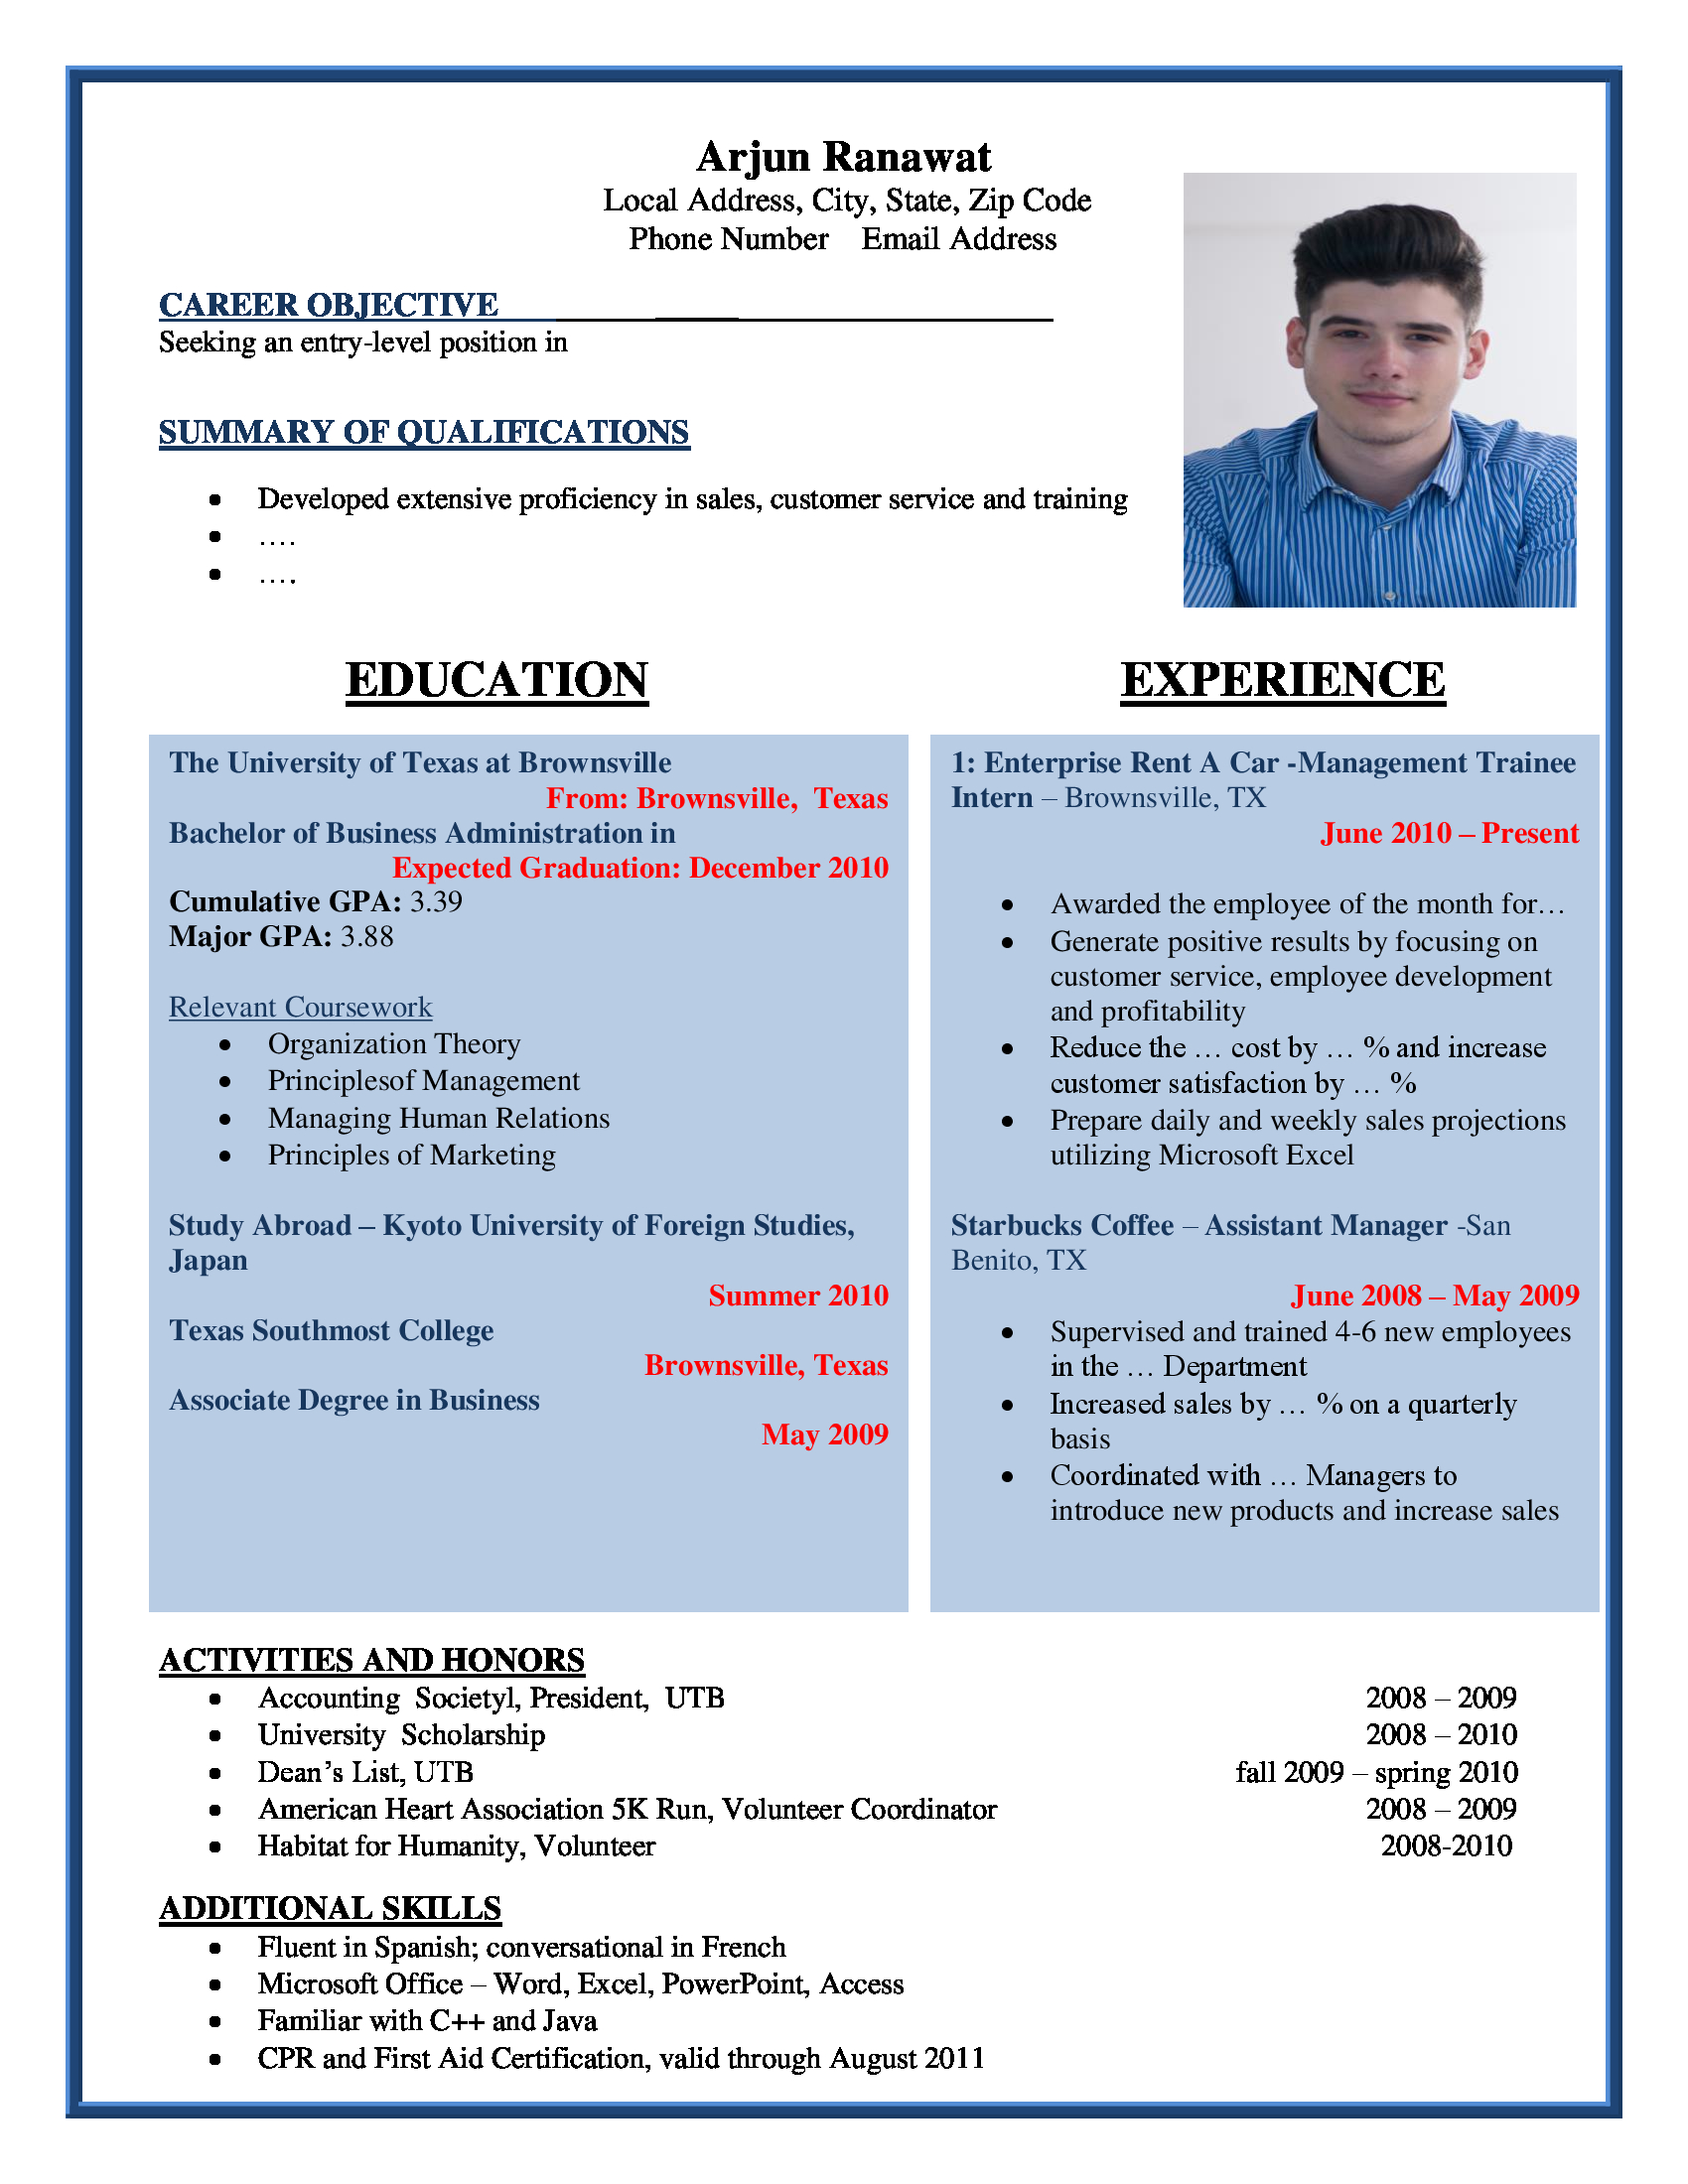 How To Create Resume For Seo Freshers?